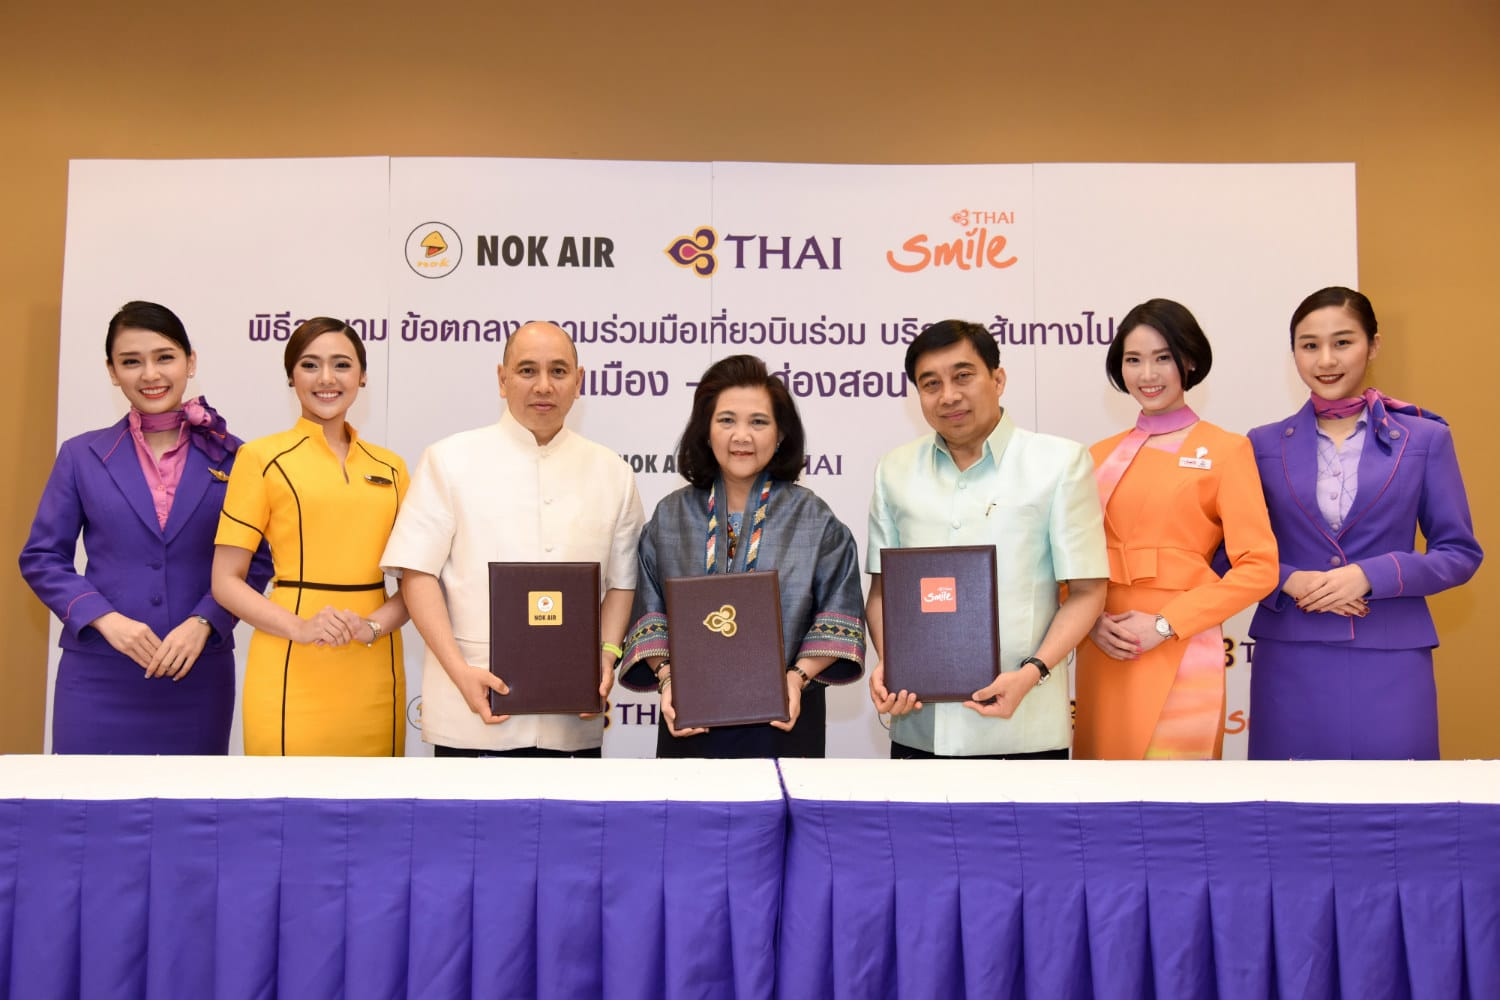 THAI, Nok Air, Thai Smile Sign MOU on Code-Share Flights to Mae Hong Son